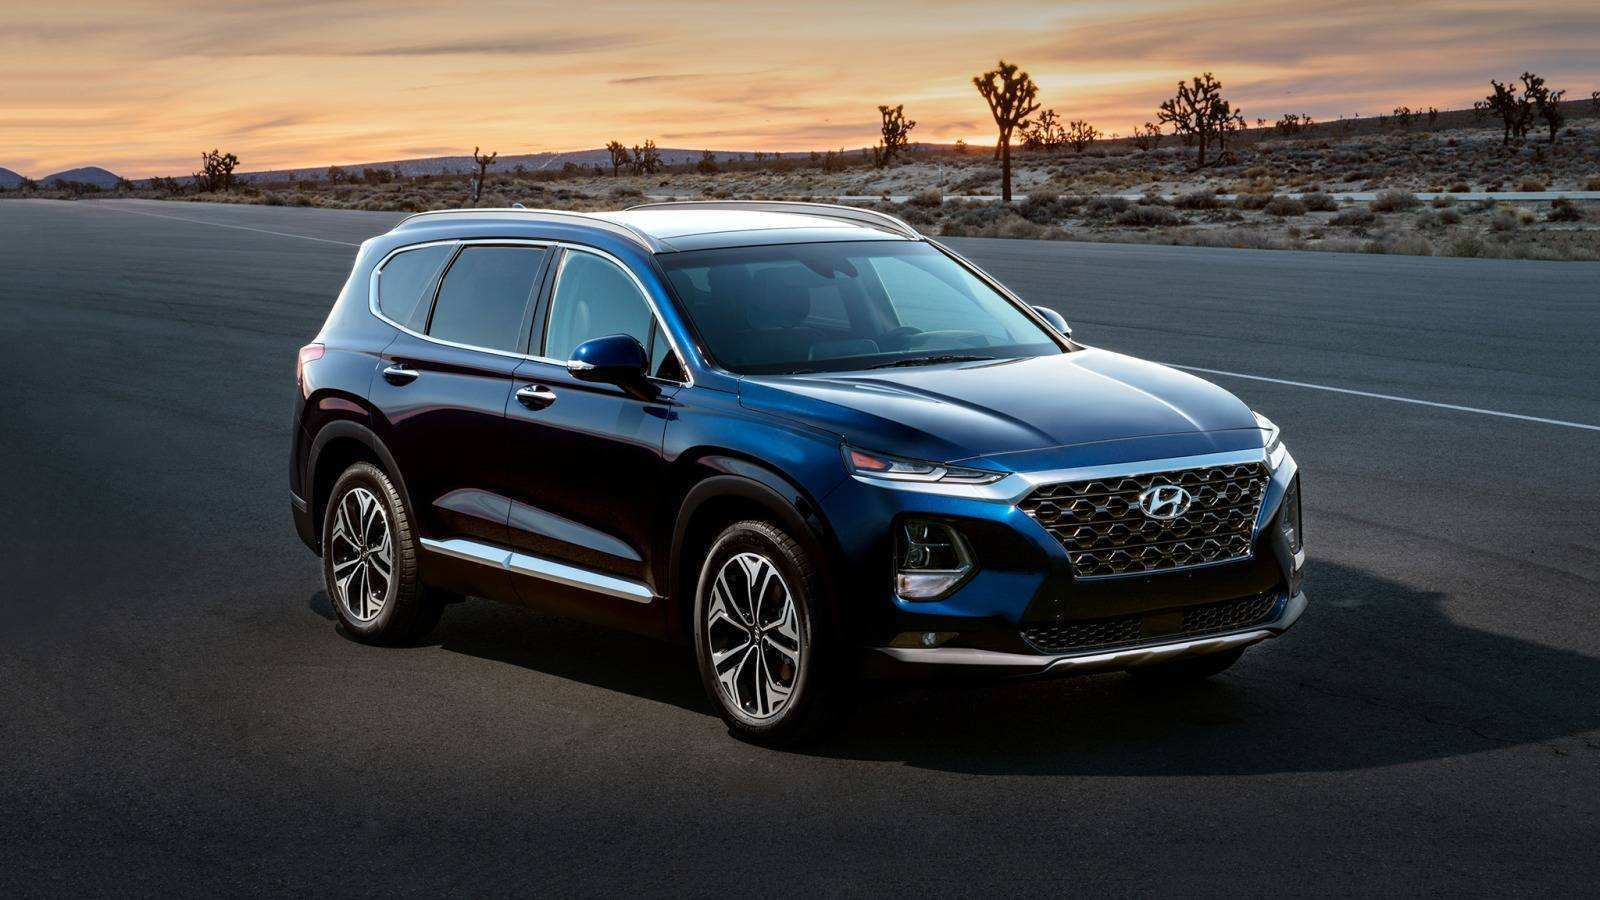 98 Best Review 2019 Hyundai Santa Fe Engine Rumors with 2019 Hyundai Santa Fe Engine